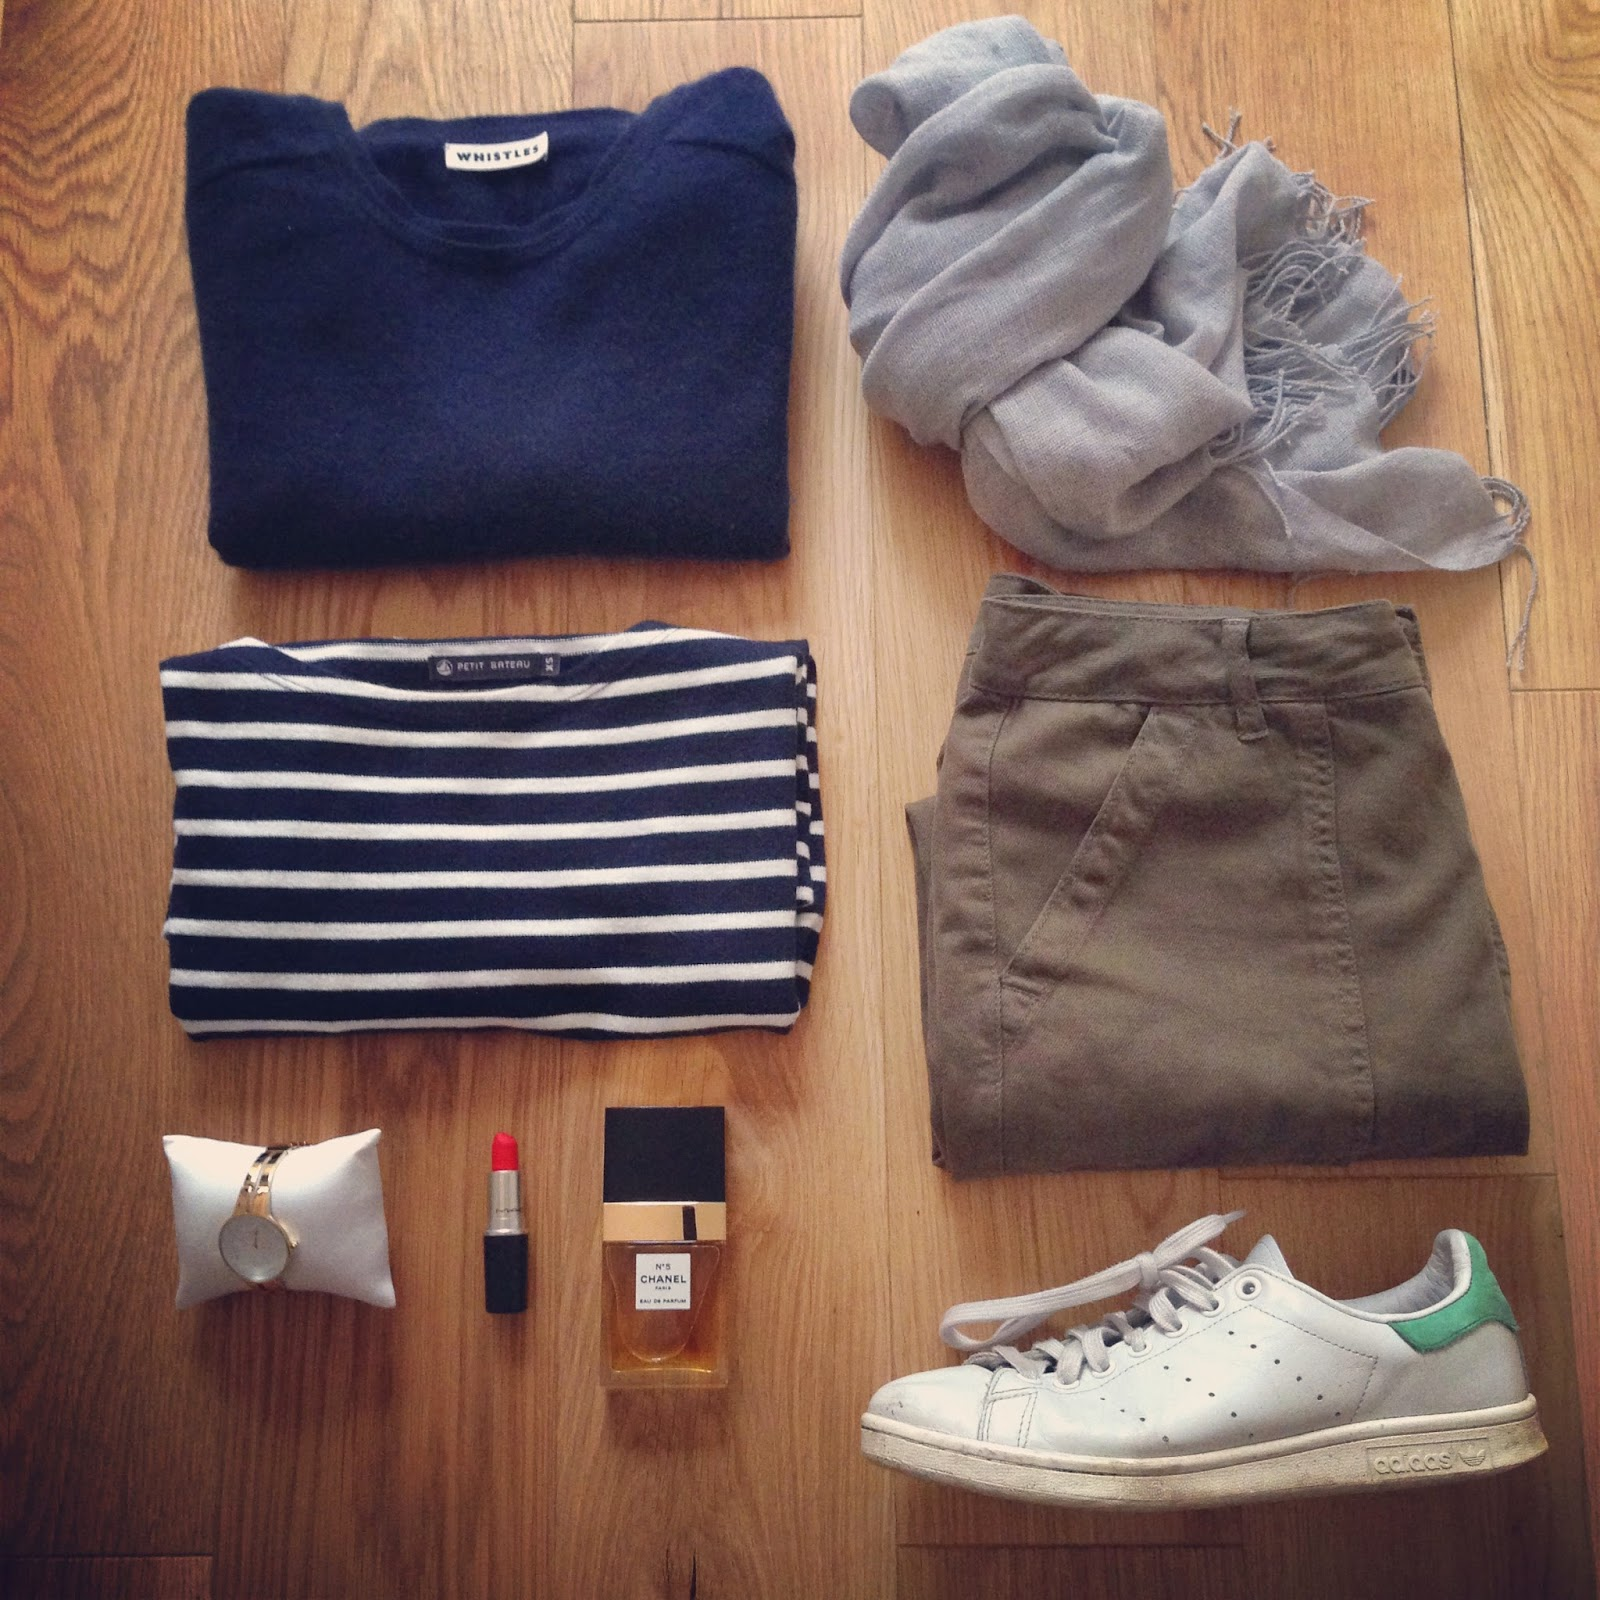 58bba8a5715 Cashmere Sweater  Whistles Breton Top  Petite Bateau Cashmere scarf  Uniqlo  Trousers  Topshop (link above) Trainers  Stan Smith Adidas Watch  Storm